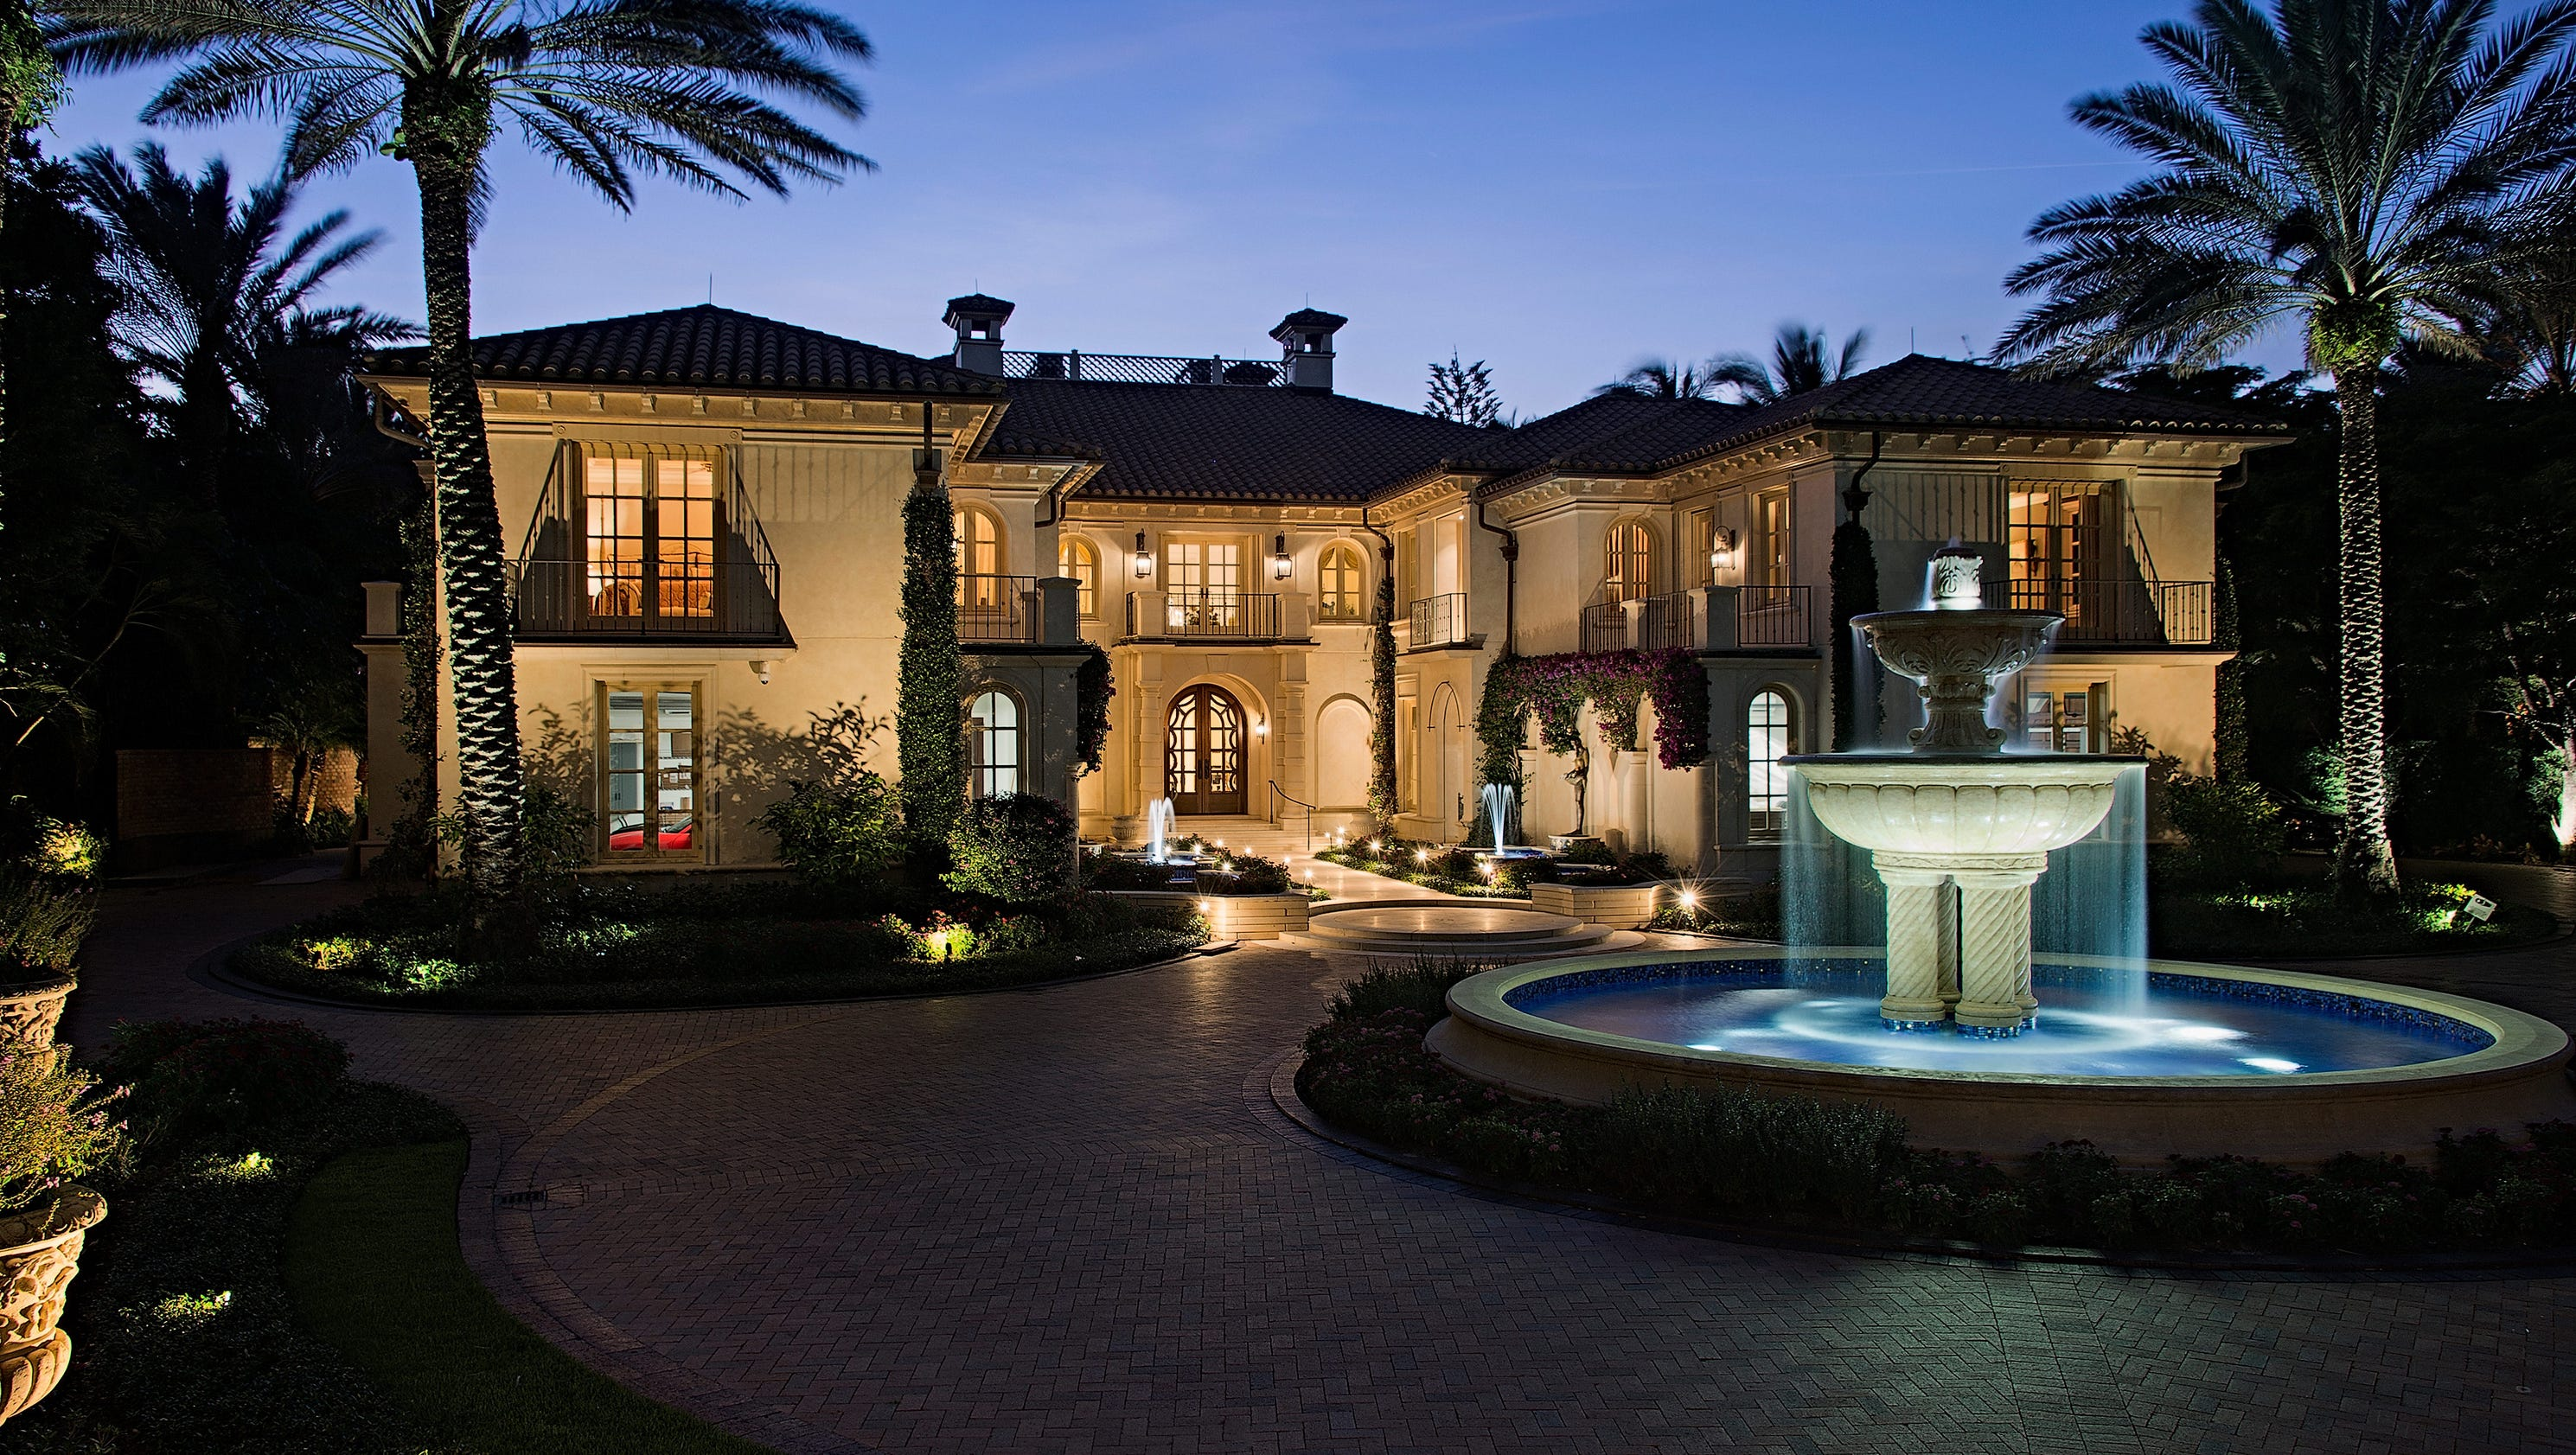 Two gulf front mansions in naples among priciest homes for for Mega mansions in florida